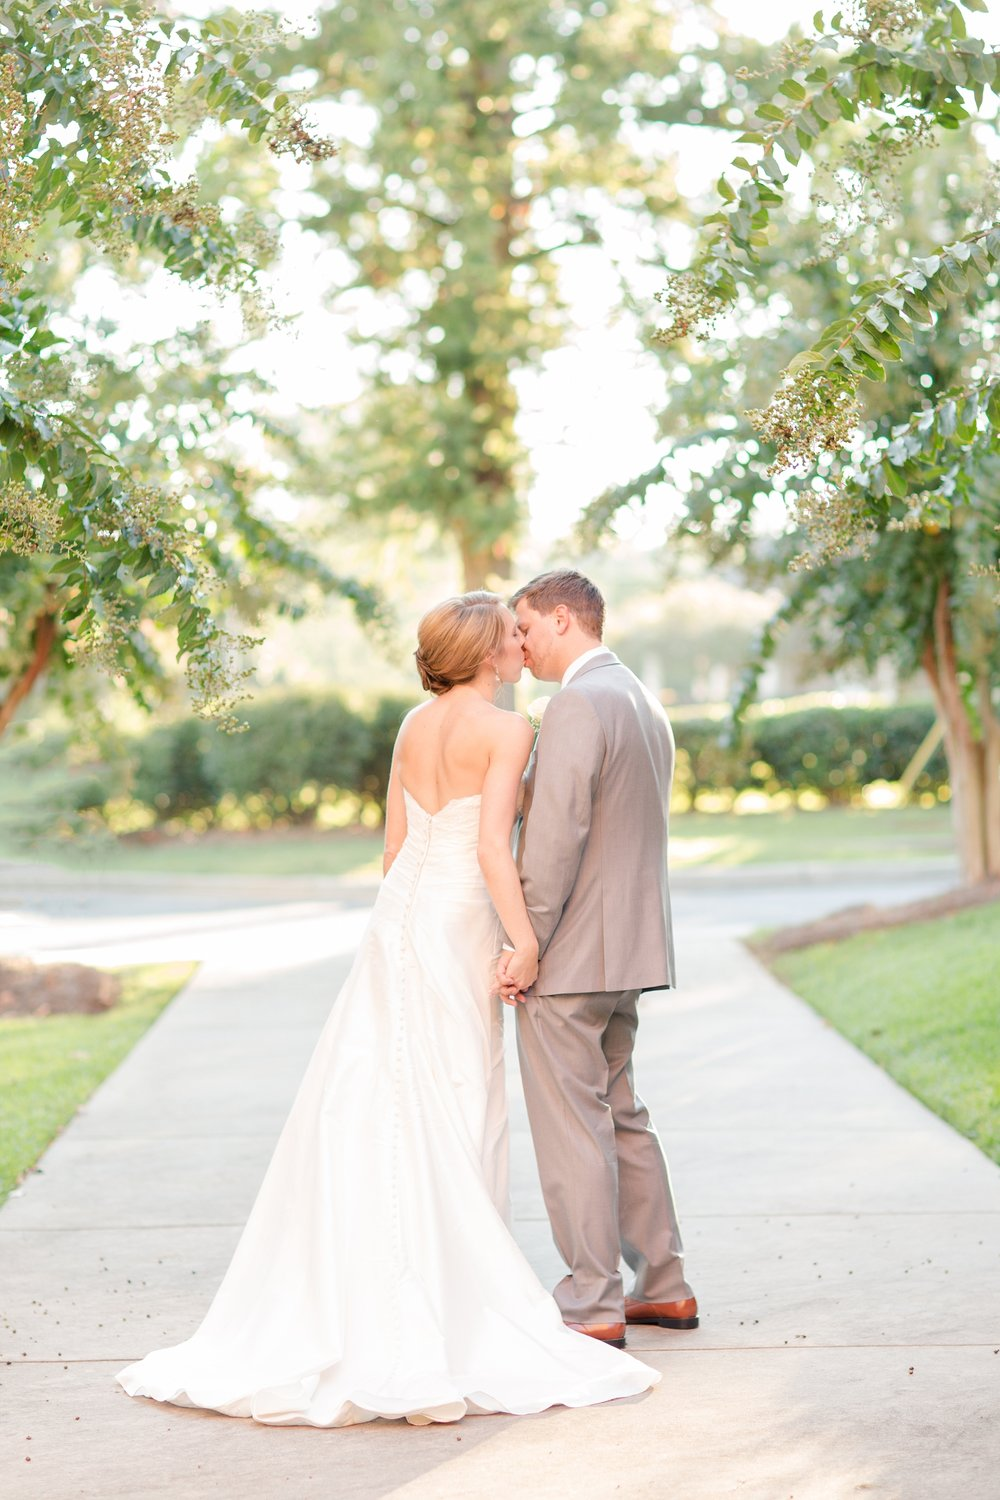 Diers 3-Bride & Groom Portraits-1068_anna grace photography charlotte north carolina wedding photographer photo.jpg